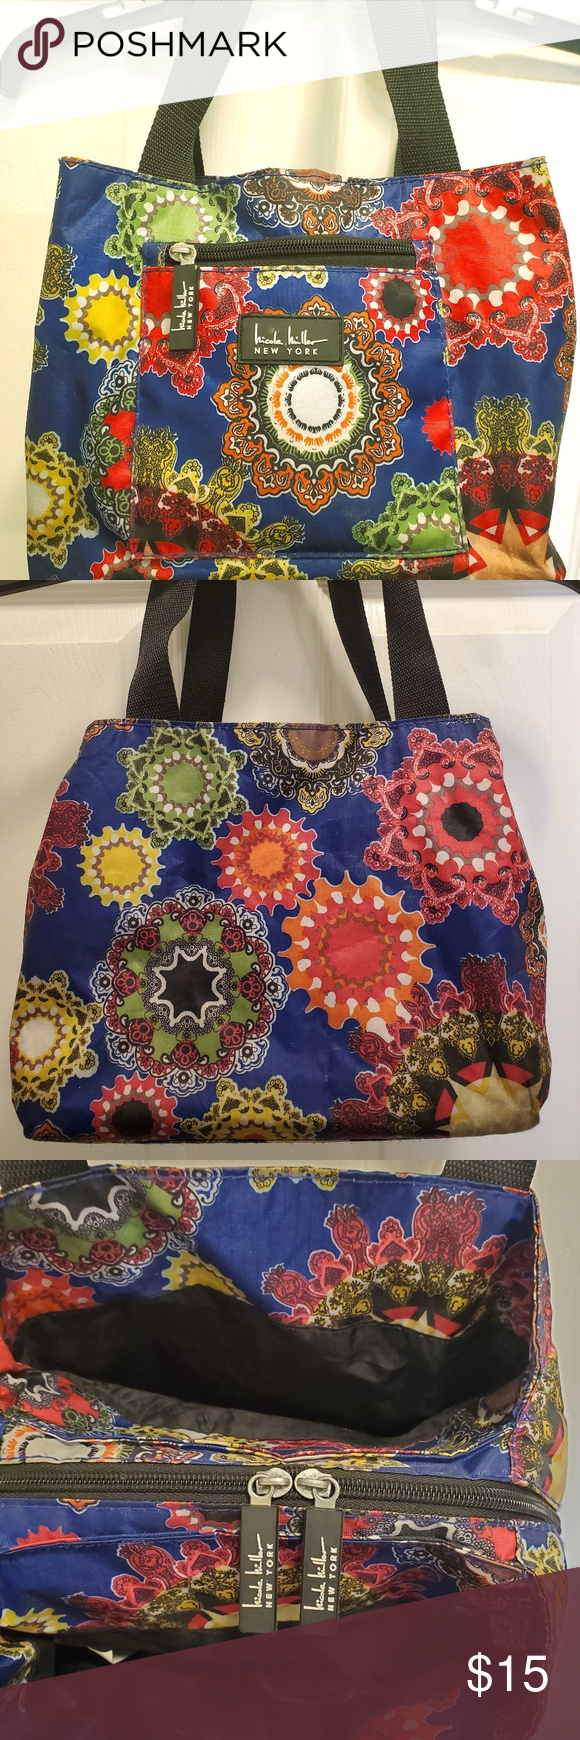 Nicole Miller Charming Blue Insulated Lunch Tote Nicole